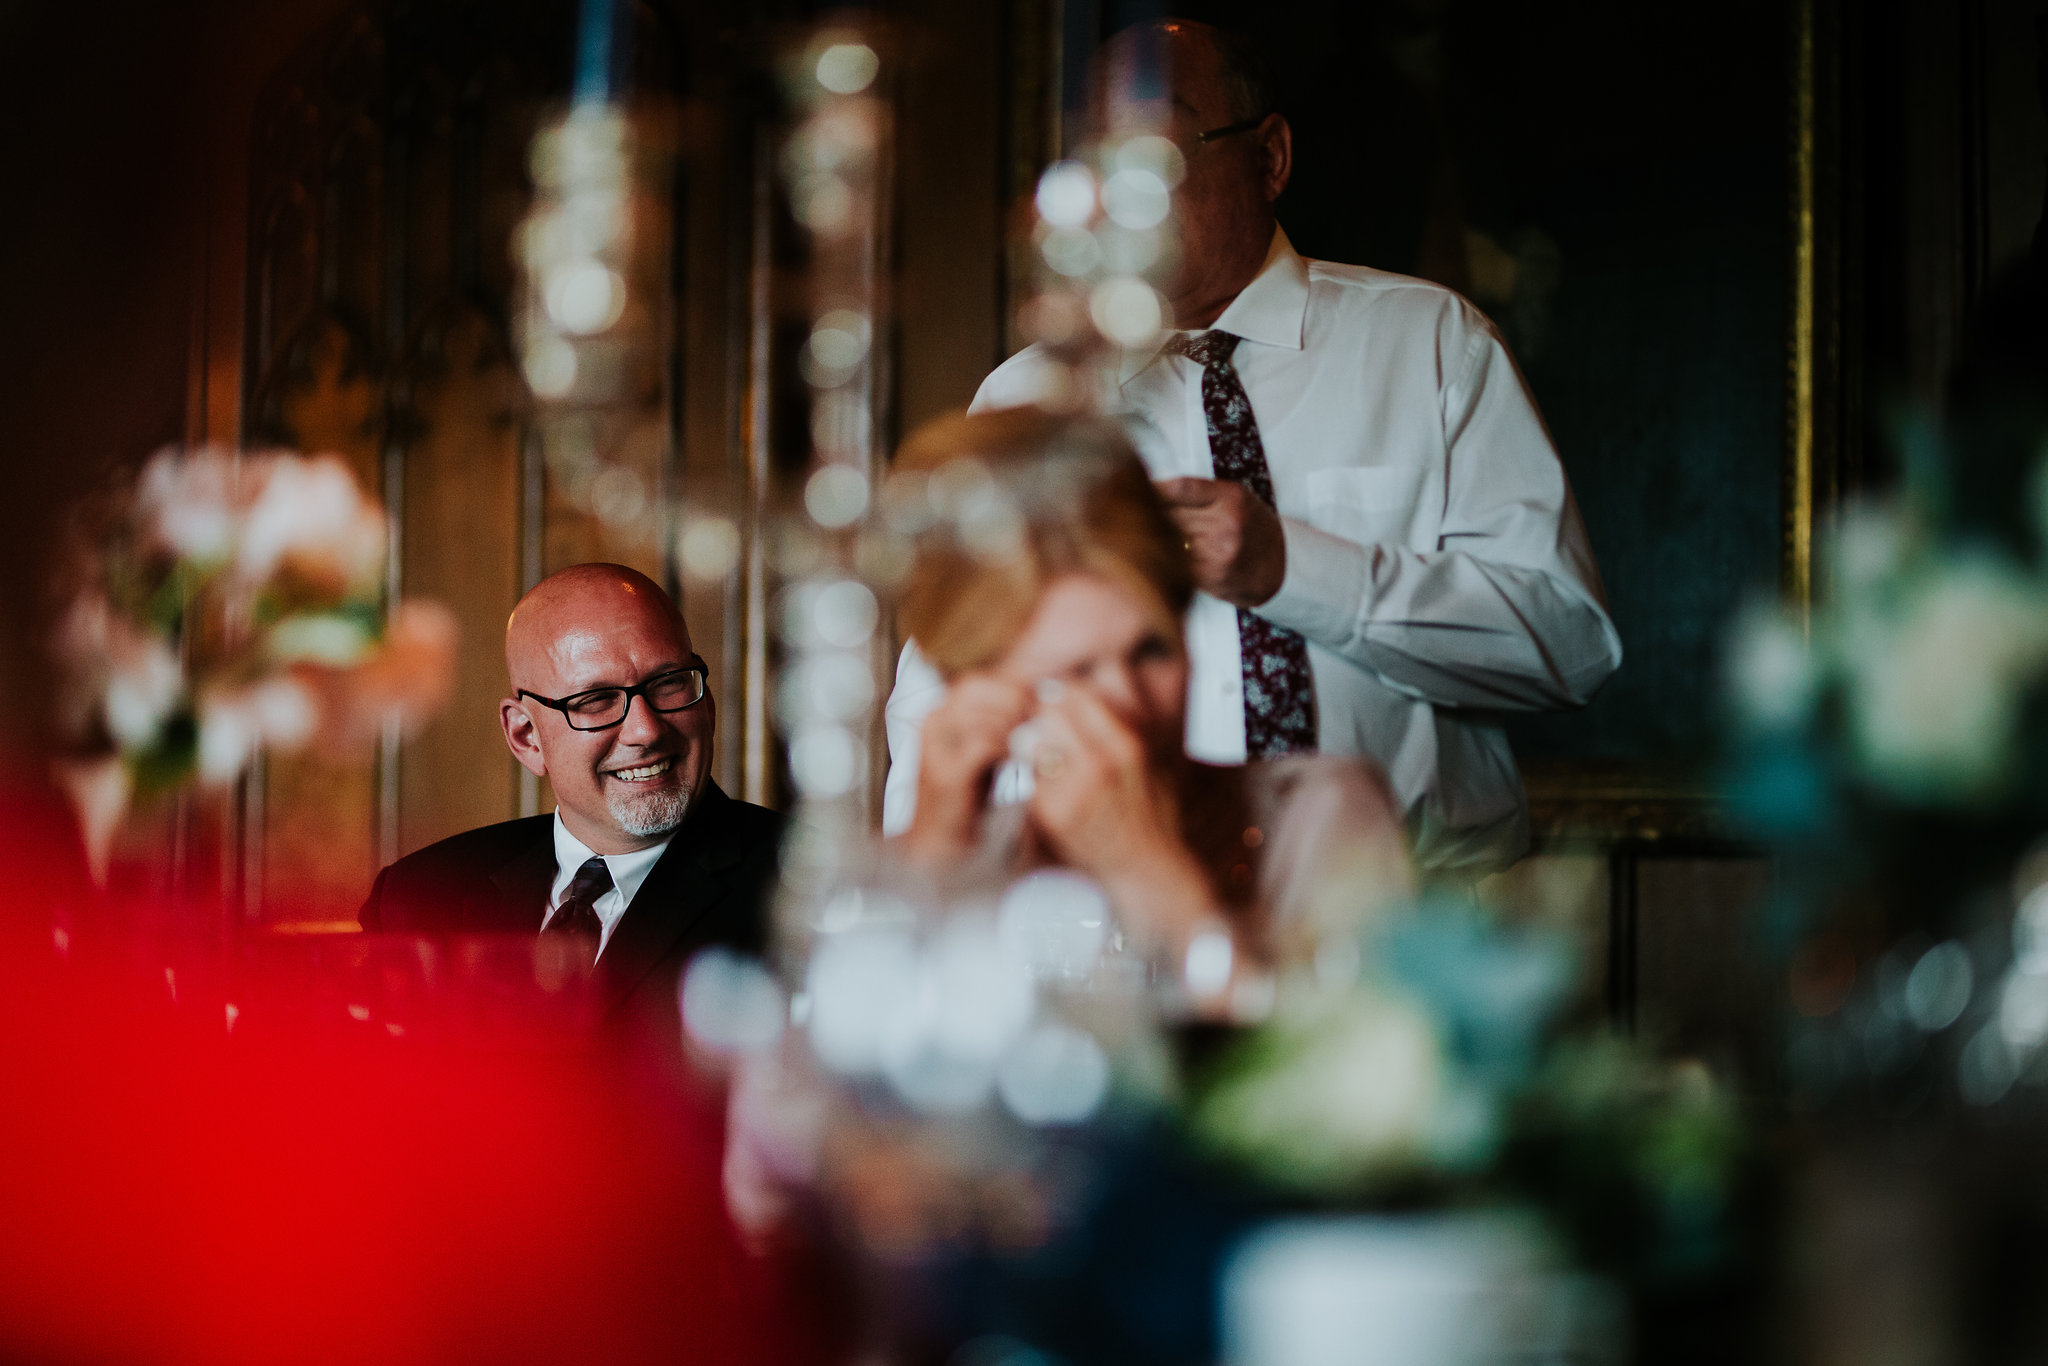 Duns_Castle_wedding_photographer_ross_alexander_photography (107).jpg